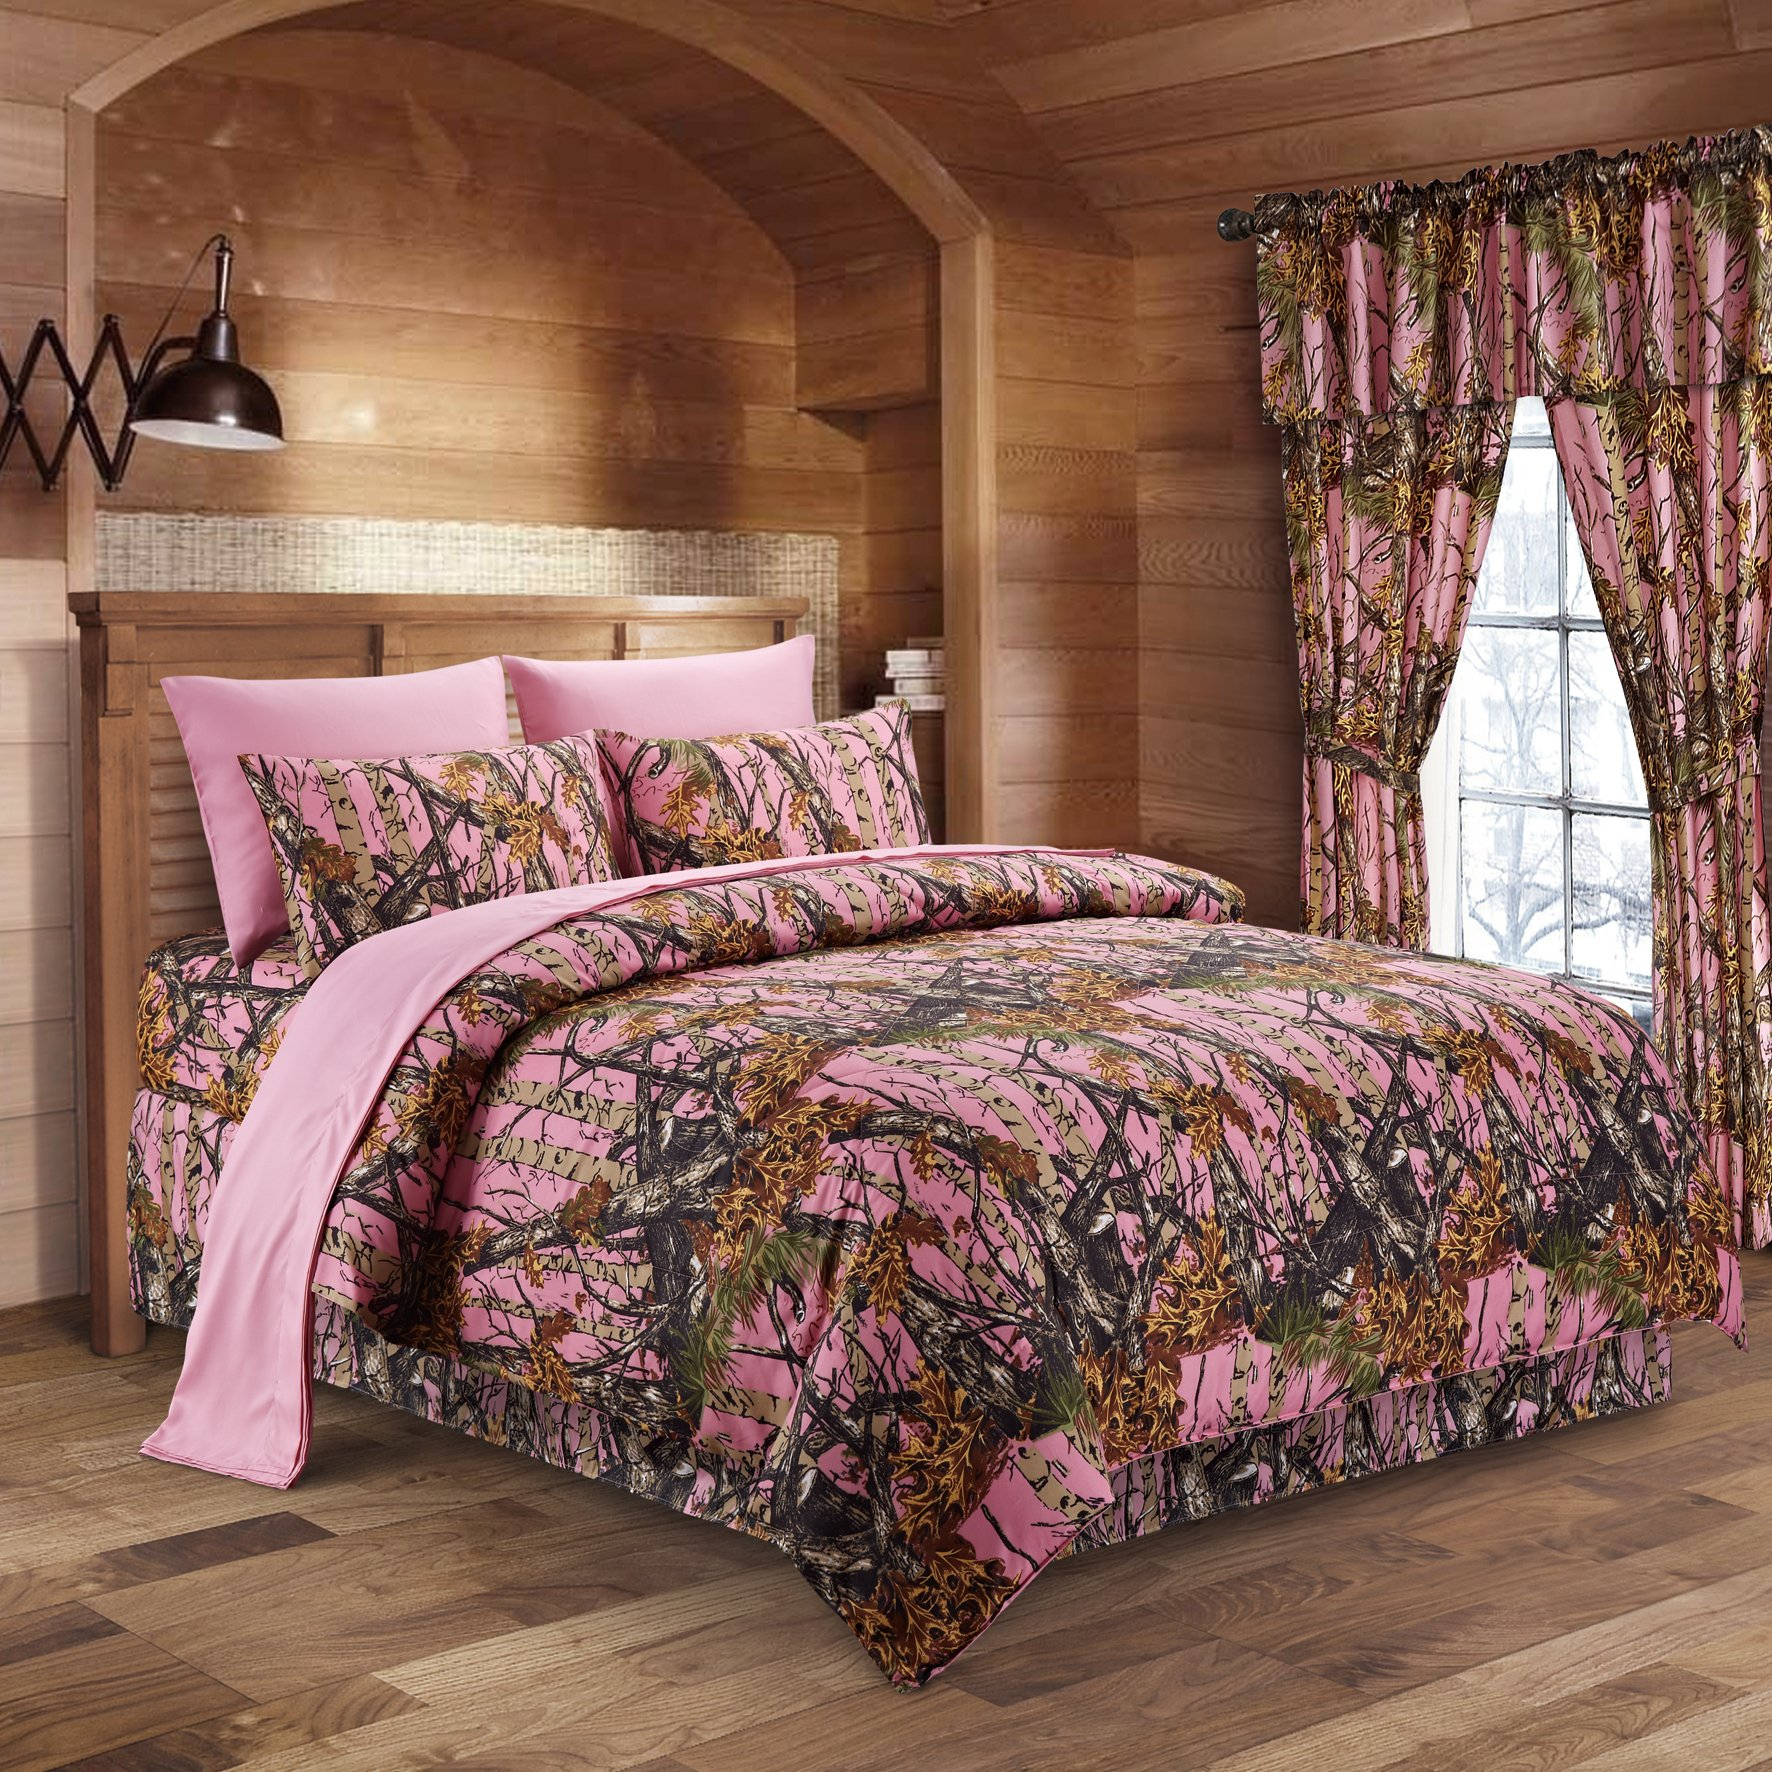 The Woods Pink Camouflage Full 8pc Premium Luxury Comforter, Sheet, Pillowcases, and Bed Skirt Set by Regal Comfort Camo Bedding Set For Hunters Cabin or Rustic Lodge Teens Boys and Girls